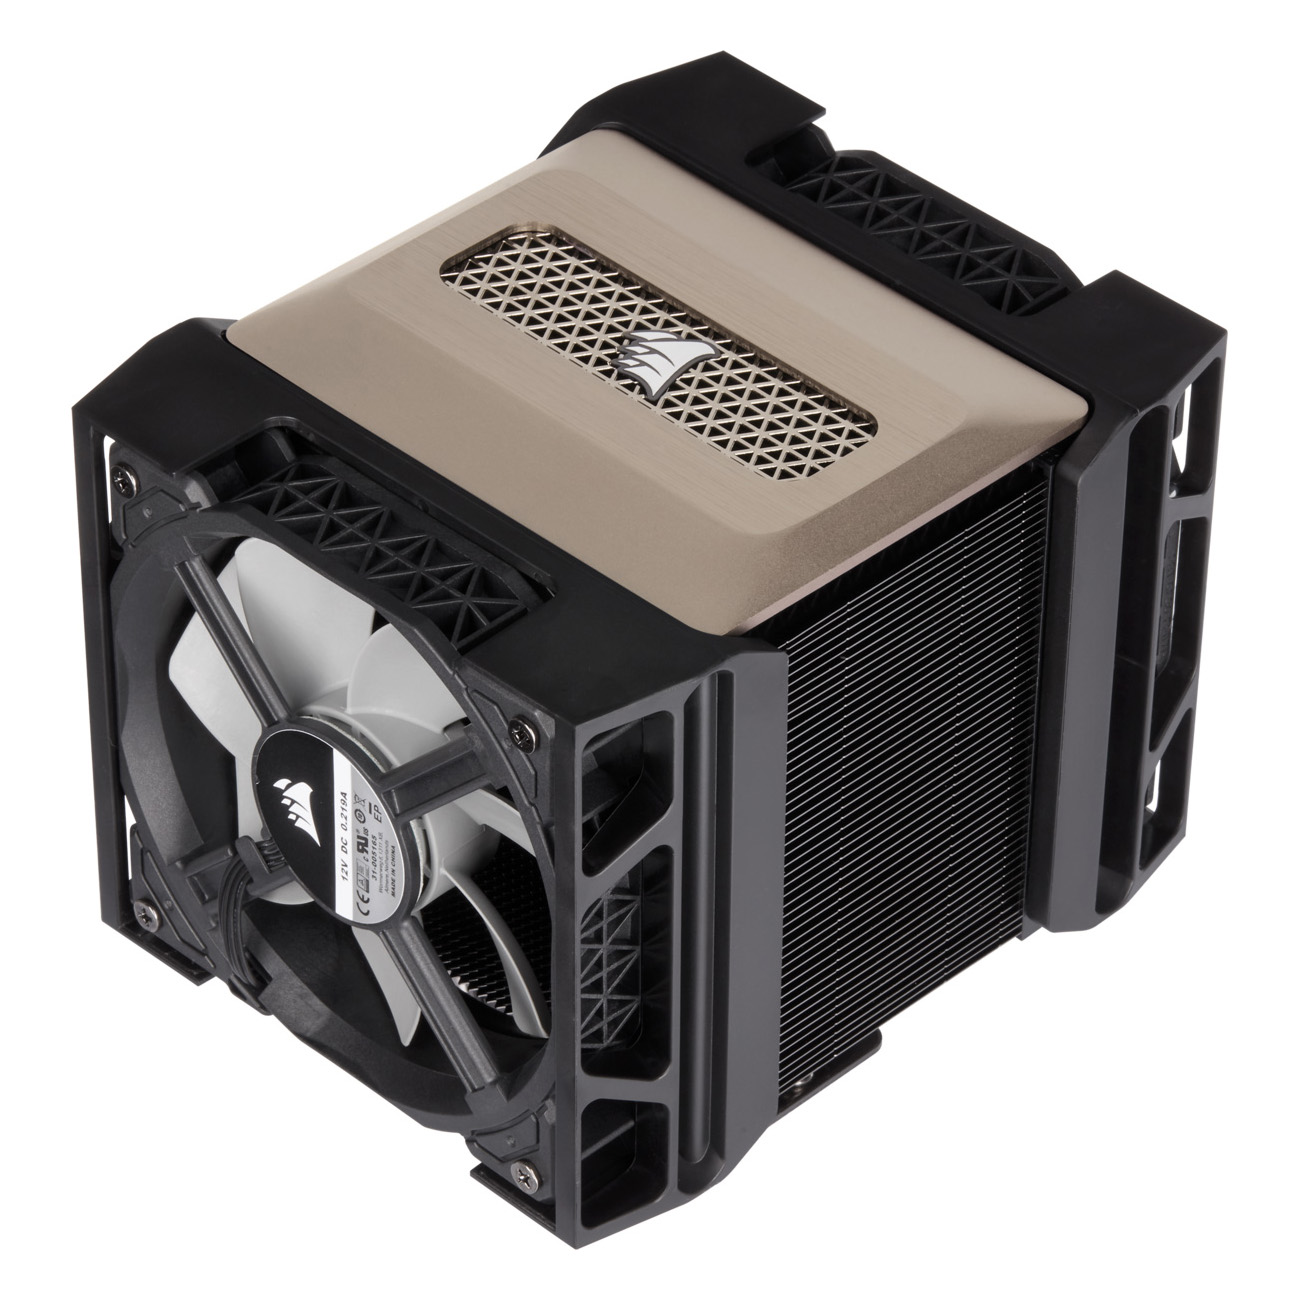 Corsair A500 Dual-fan Cooler